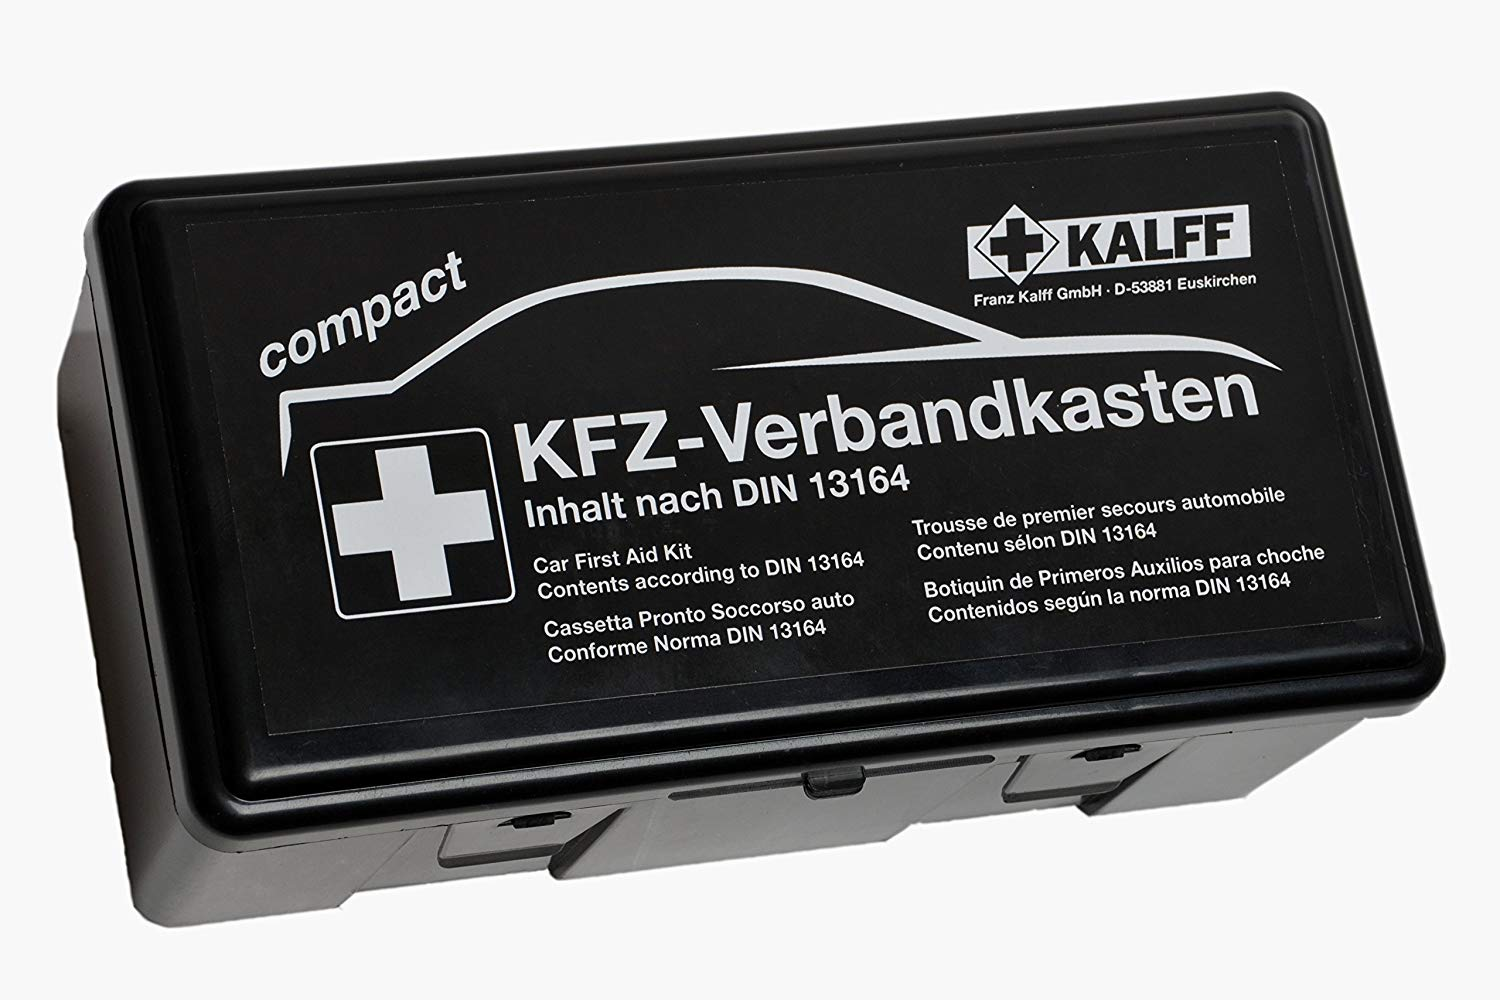 Kalff KFZ Verbandkasten amazon